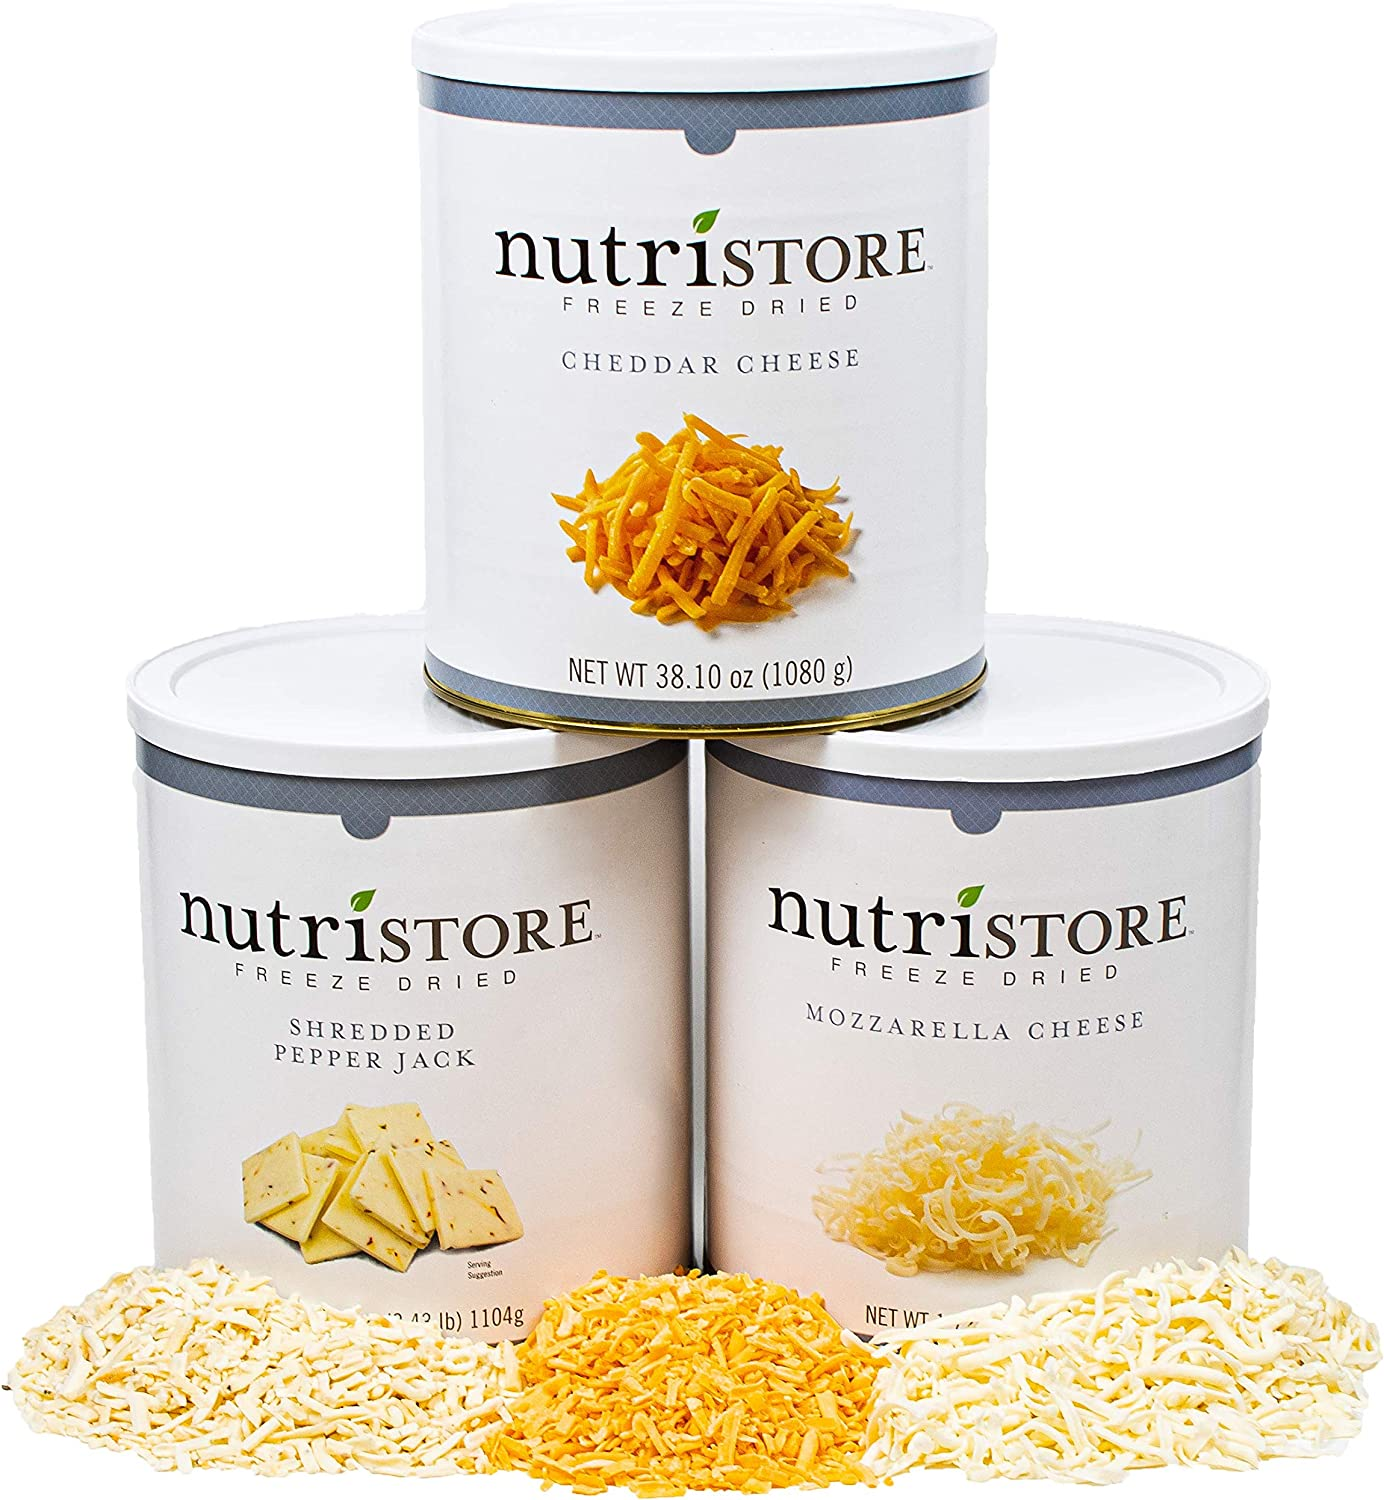 Nutristore Freeze-Dried Cheese Sample Variety 3-Pack | Cheddar, Mozzarella, & Pepper Jack | Perfect for Snacking, Backpacking, & Home Meals | Bulk Emergency Survival Food Storage | 25 Year Shelf-Life